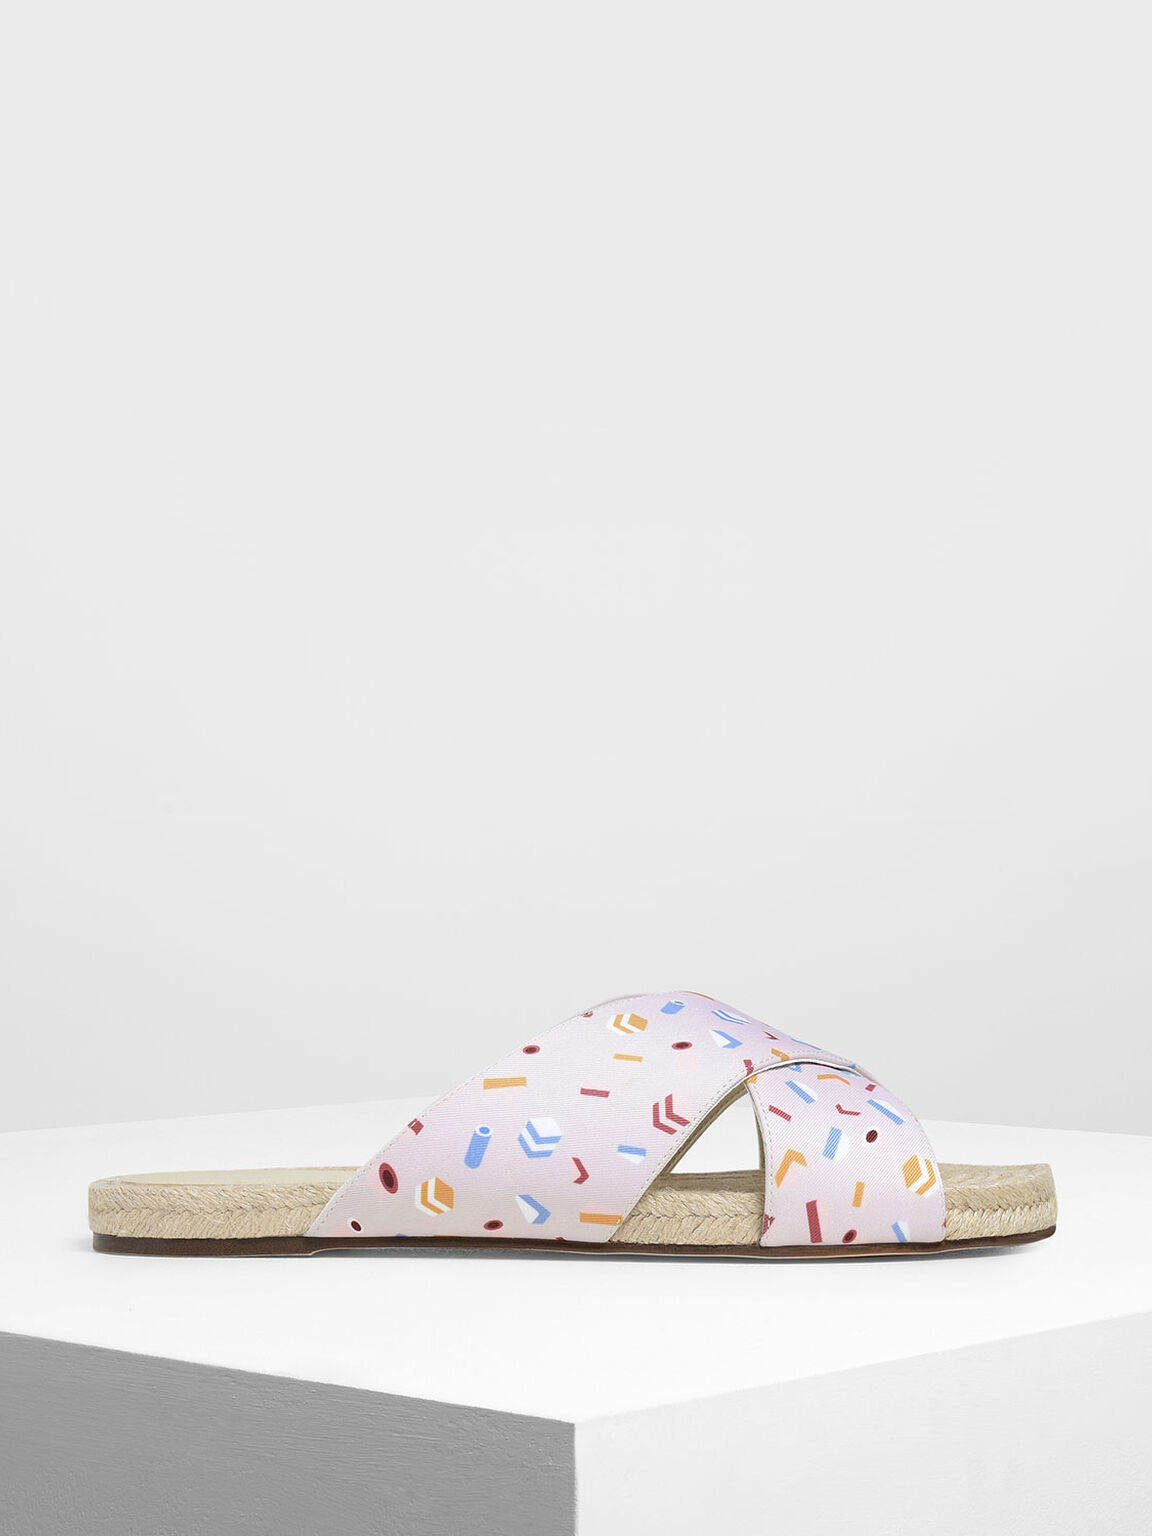 Criss Cross Printed Fabric Slide Sandals, Light Pink, hi-res